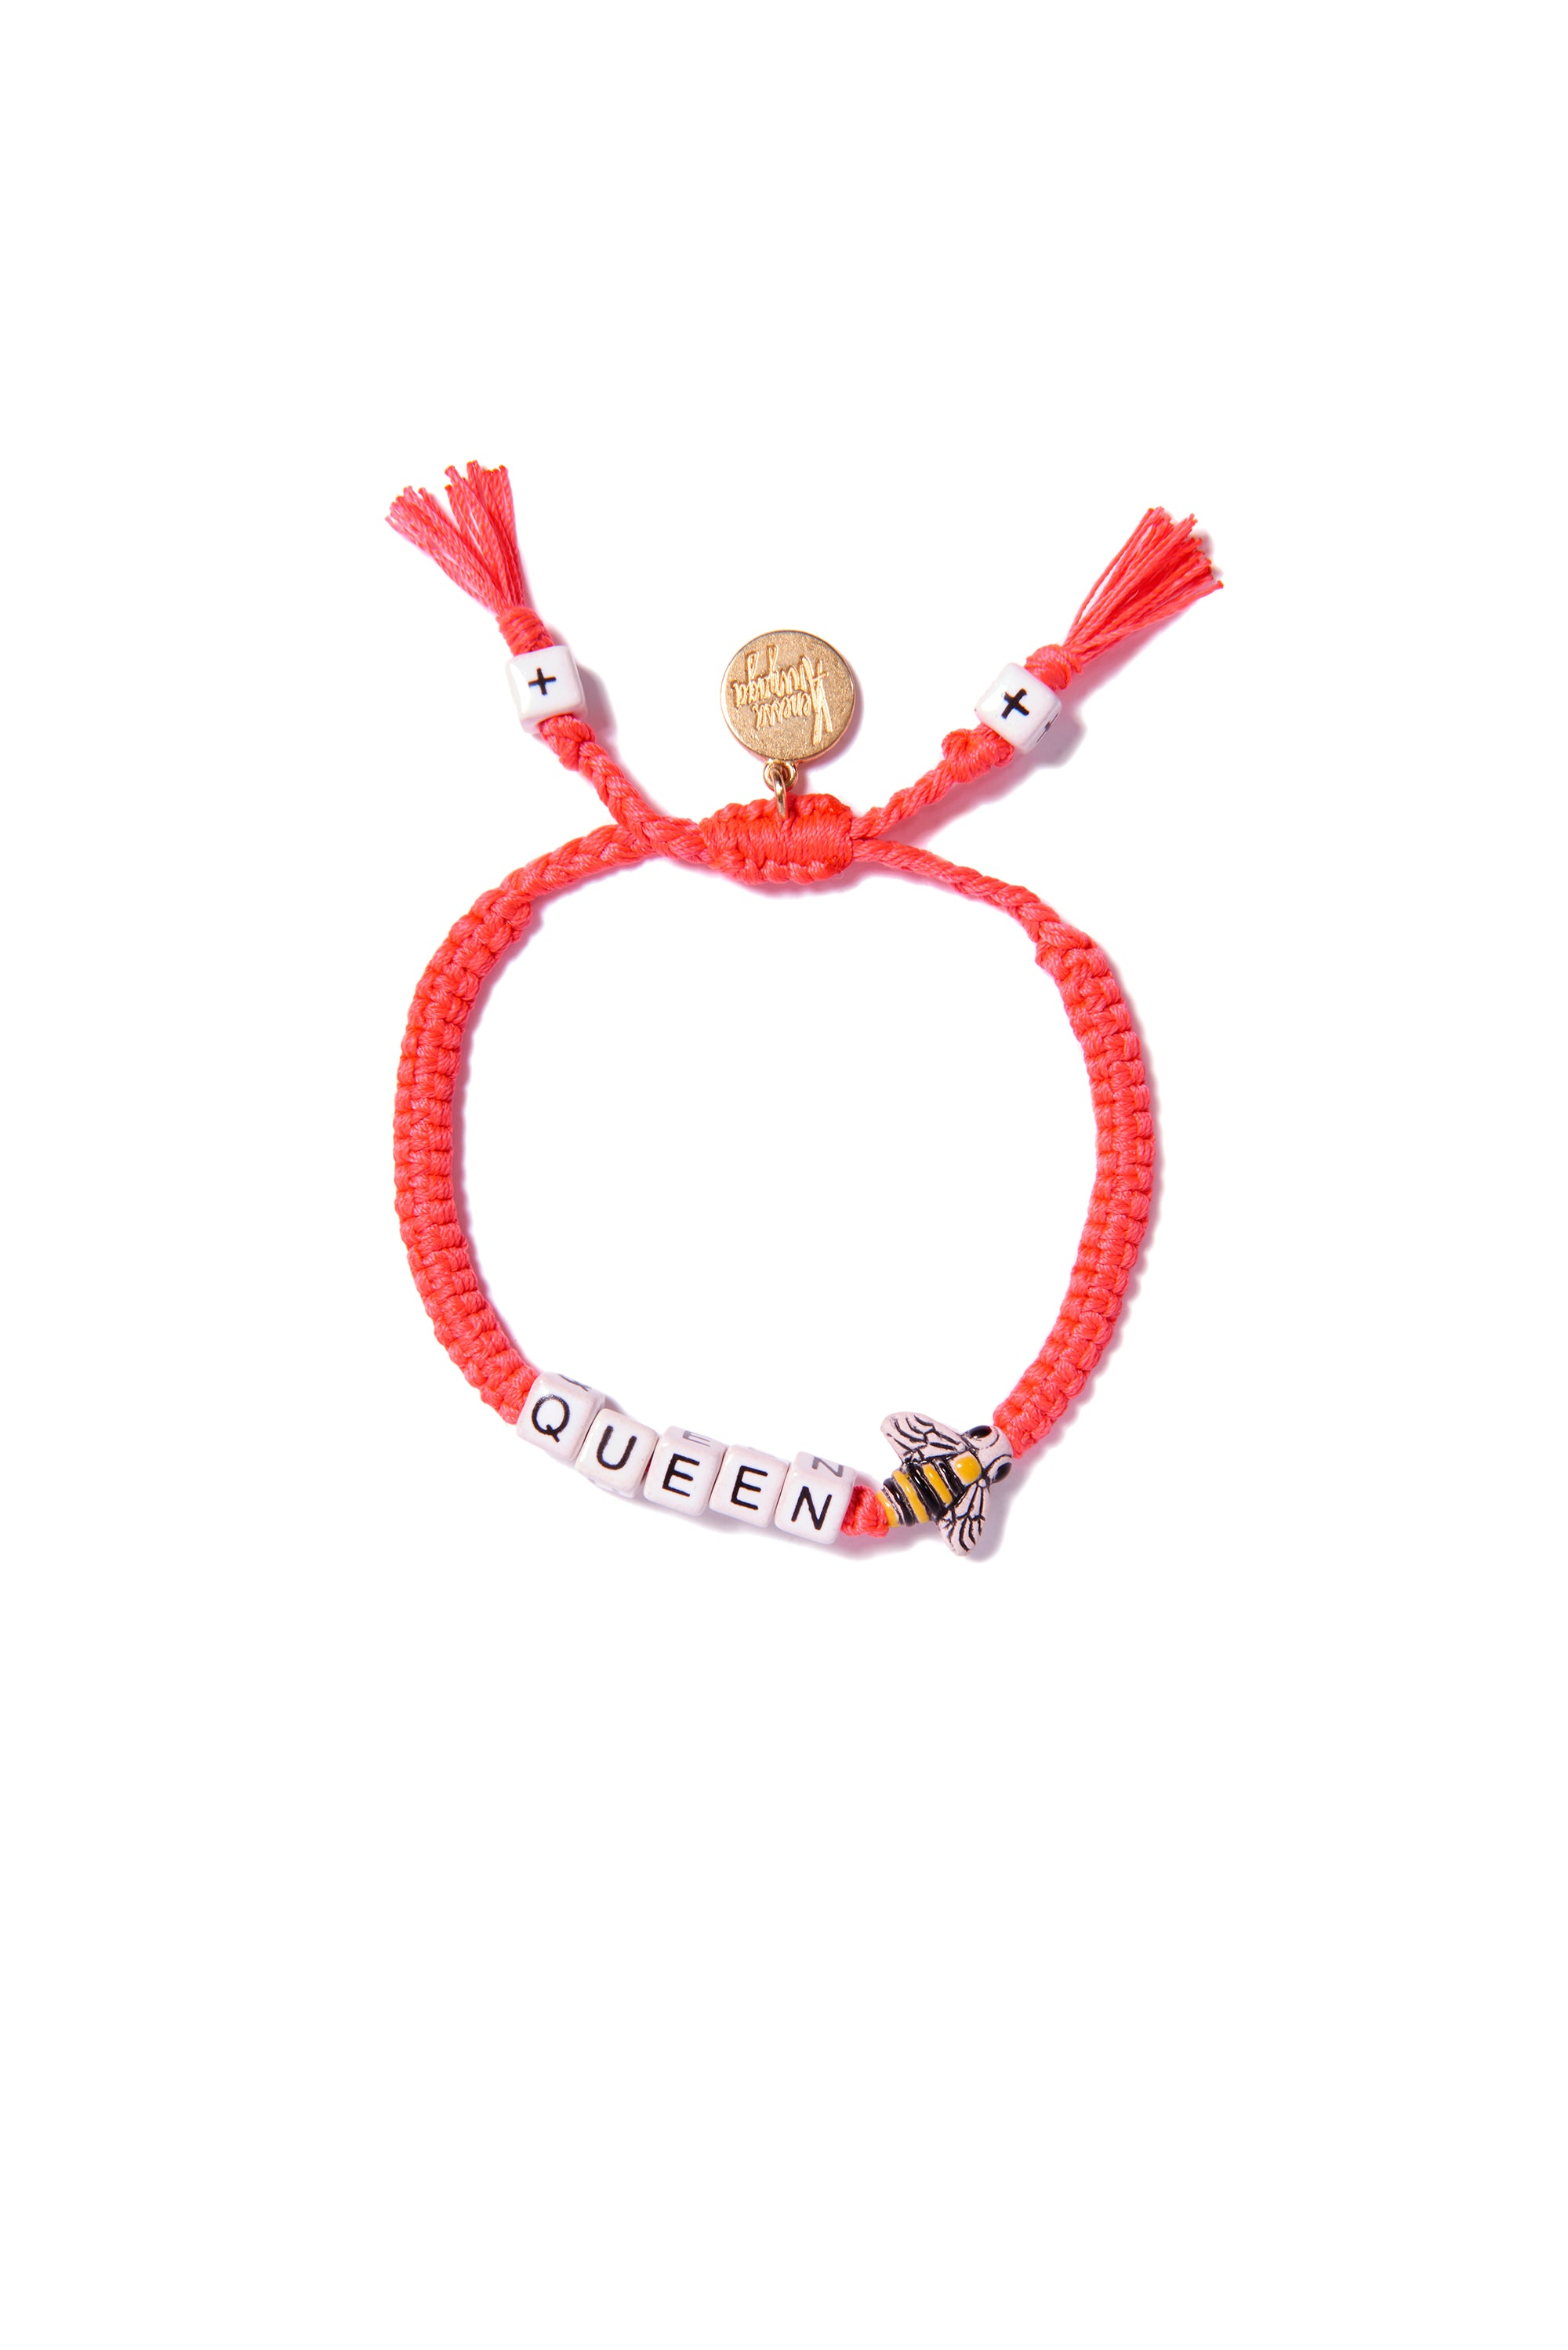 VA Queen Bee bracelet in neon pink